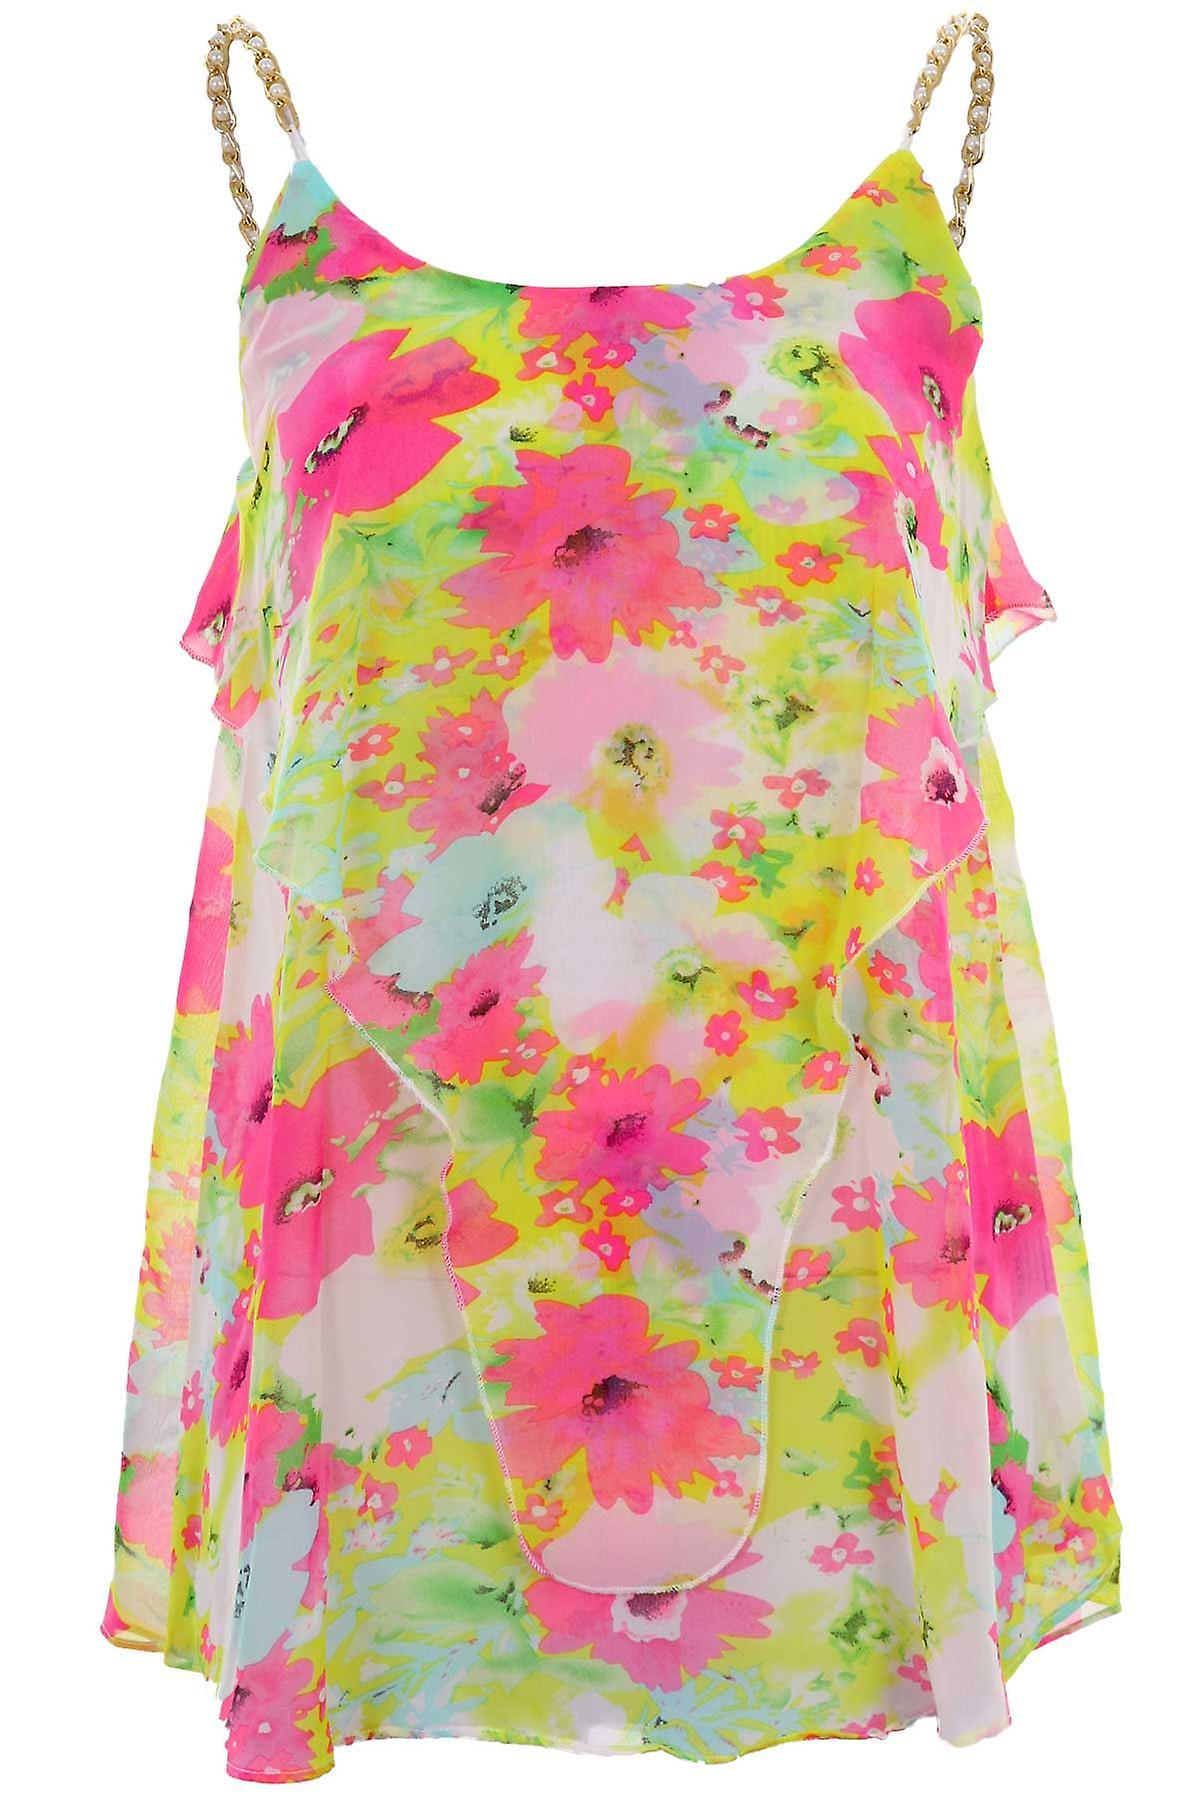 Ladies Chain Pearl Strap Chiffon Frill Layered Floral Print Party Women's Vest Top